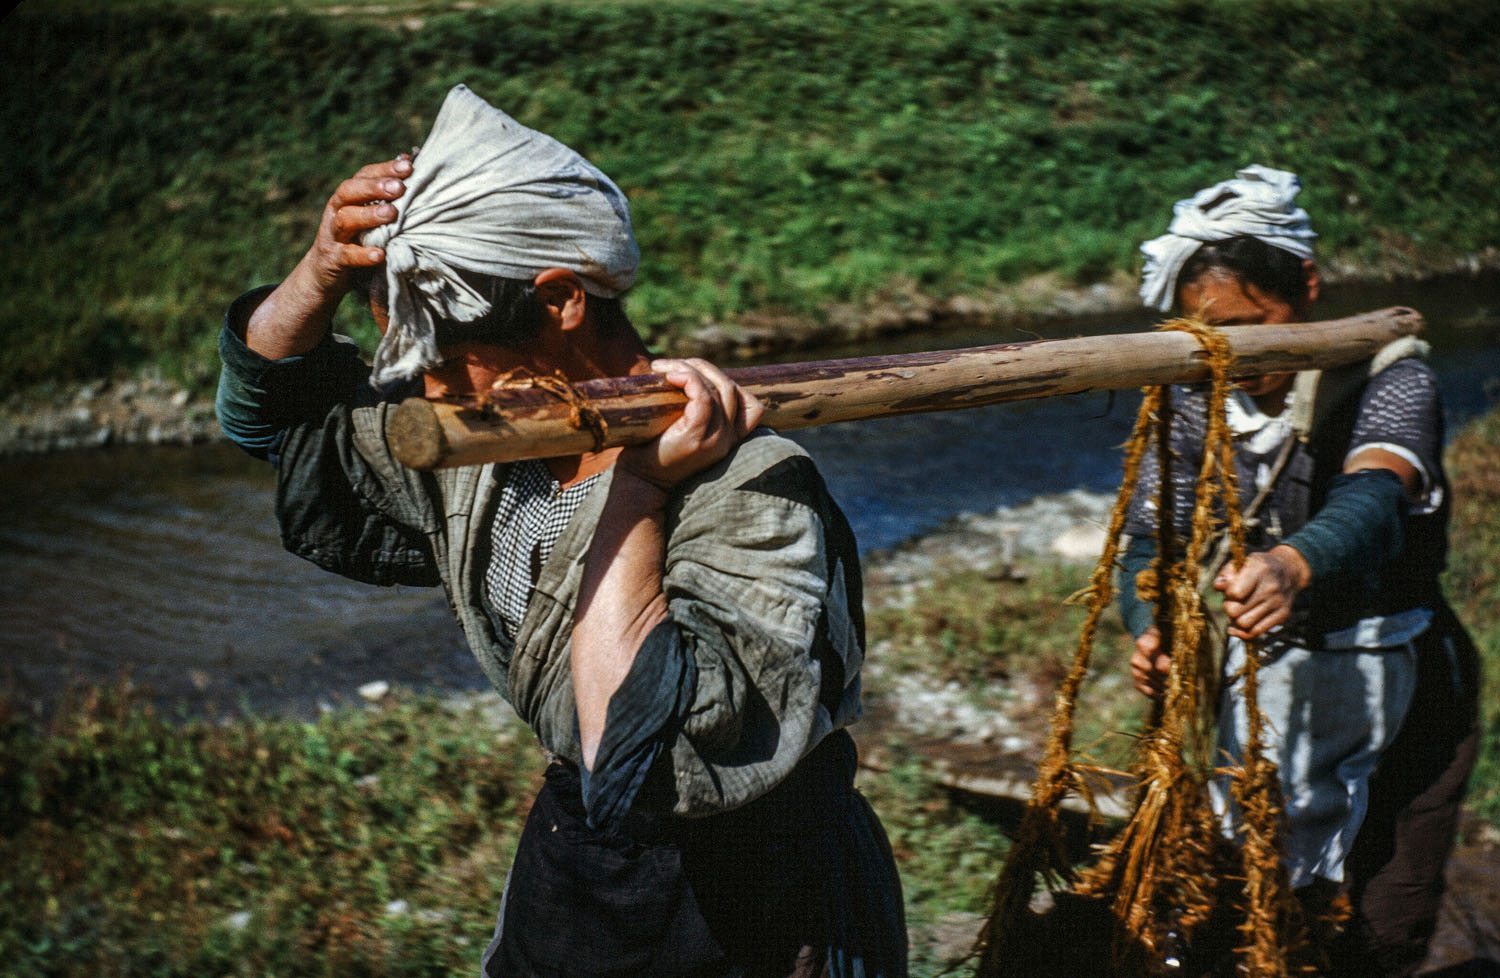 314-Women Carrying Load on Poles